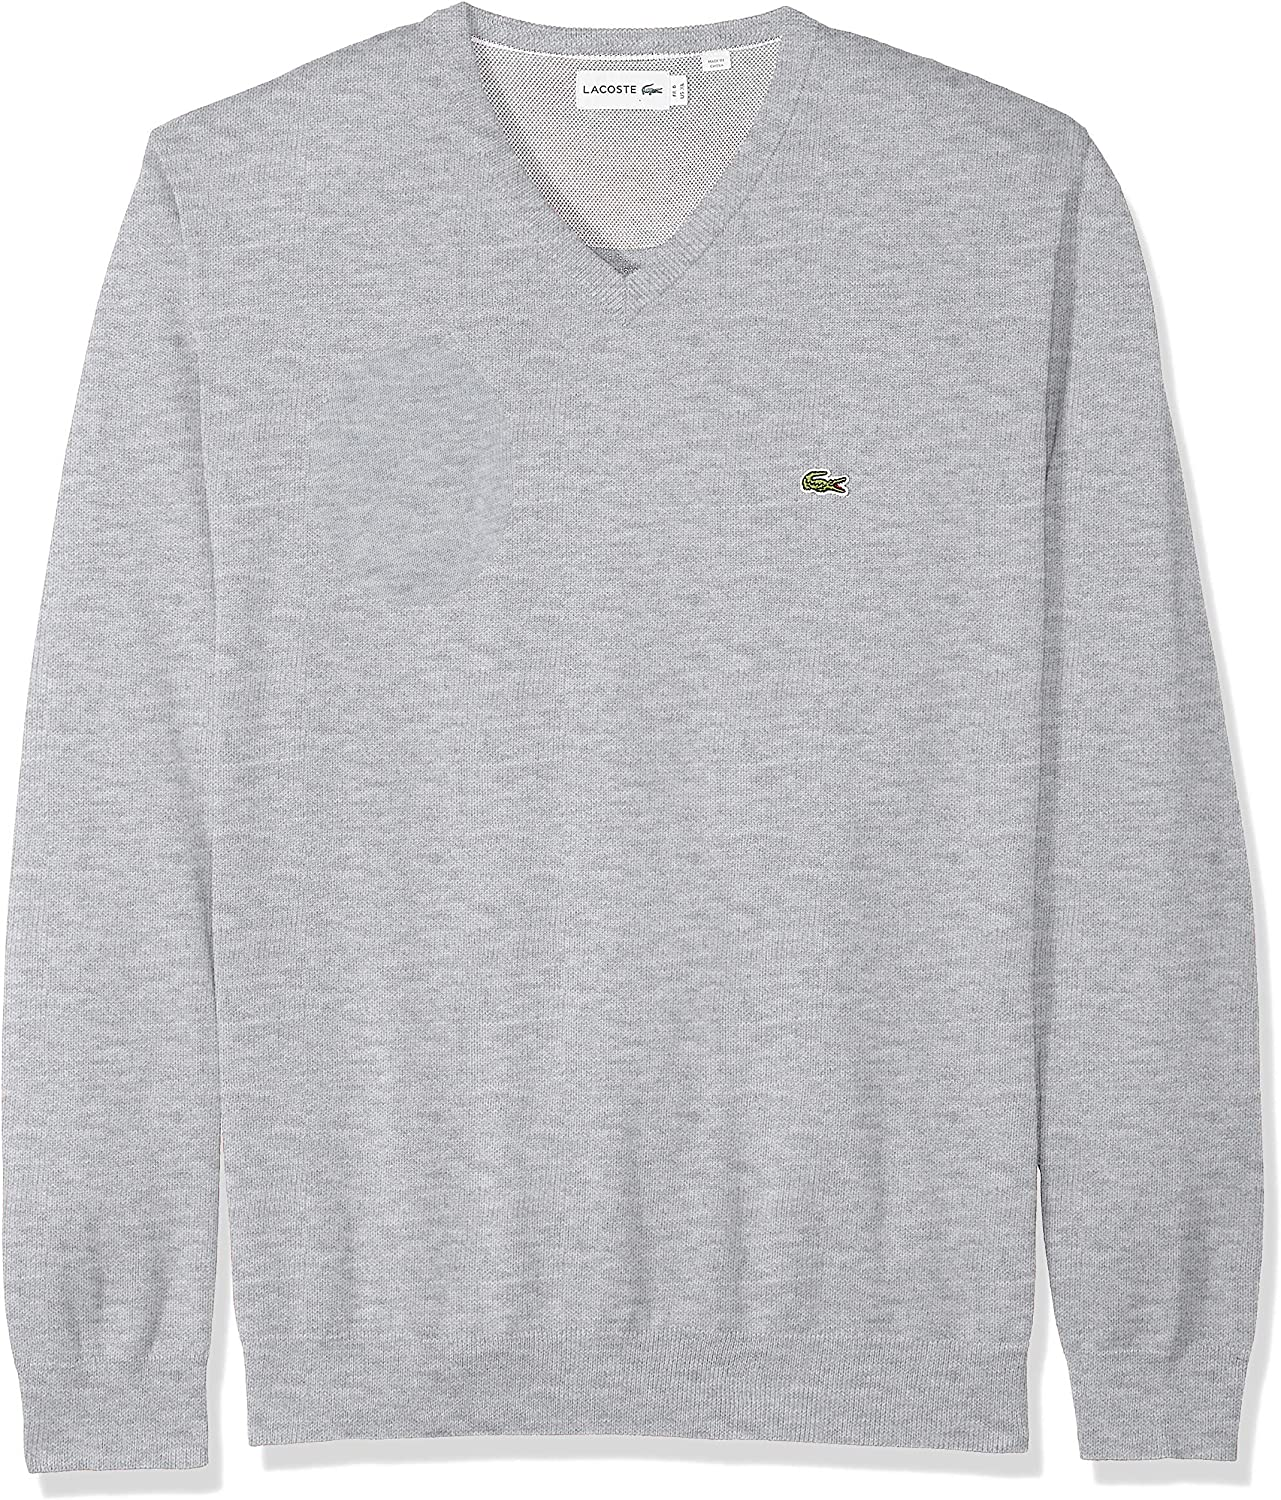 Lacoste Mens Long Sleeve Half Moon V Neck Jersey Sweater